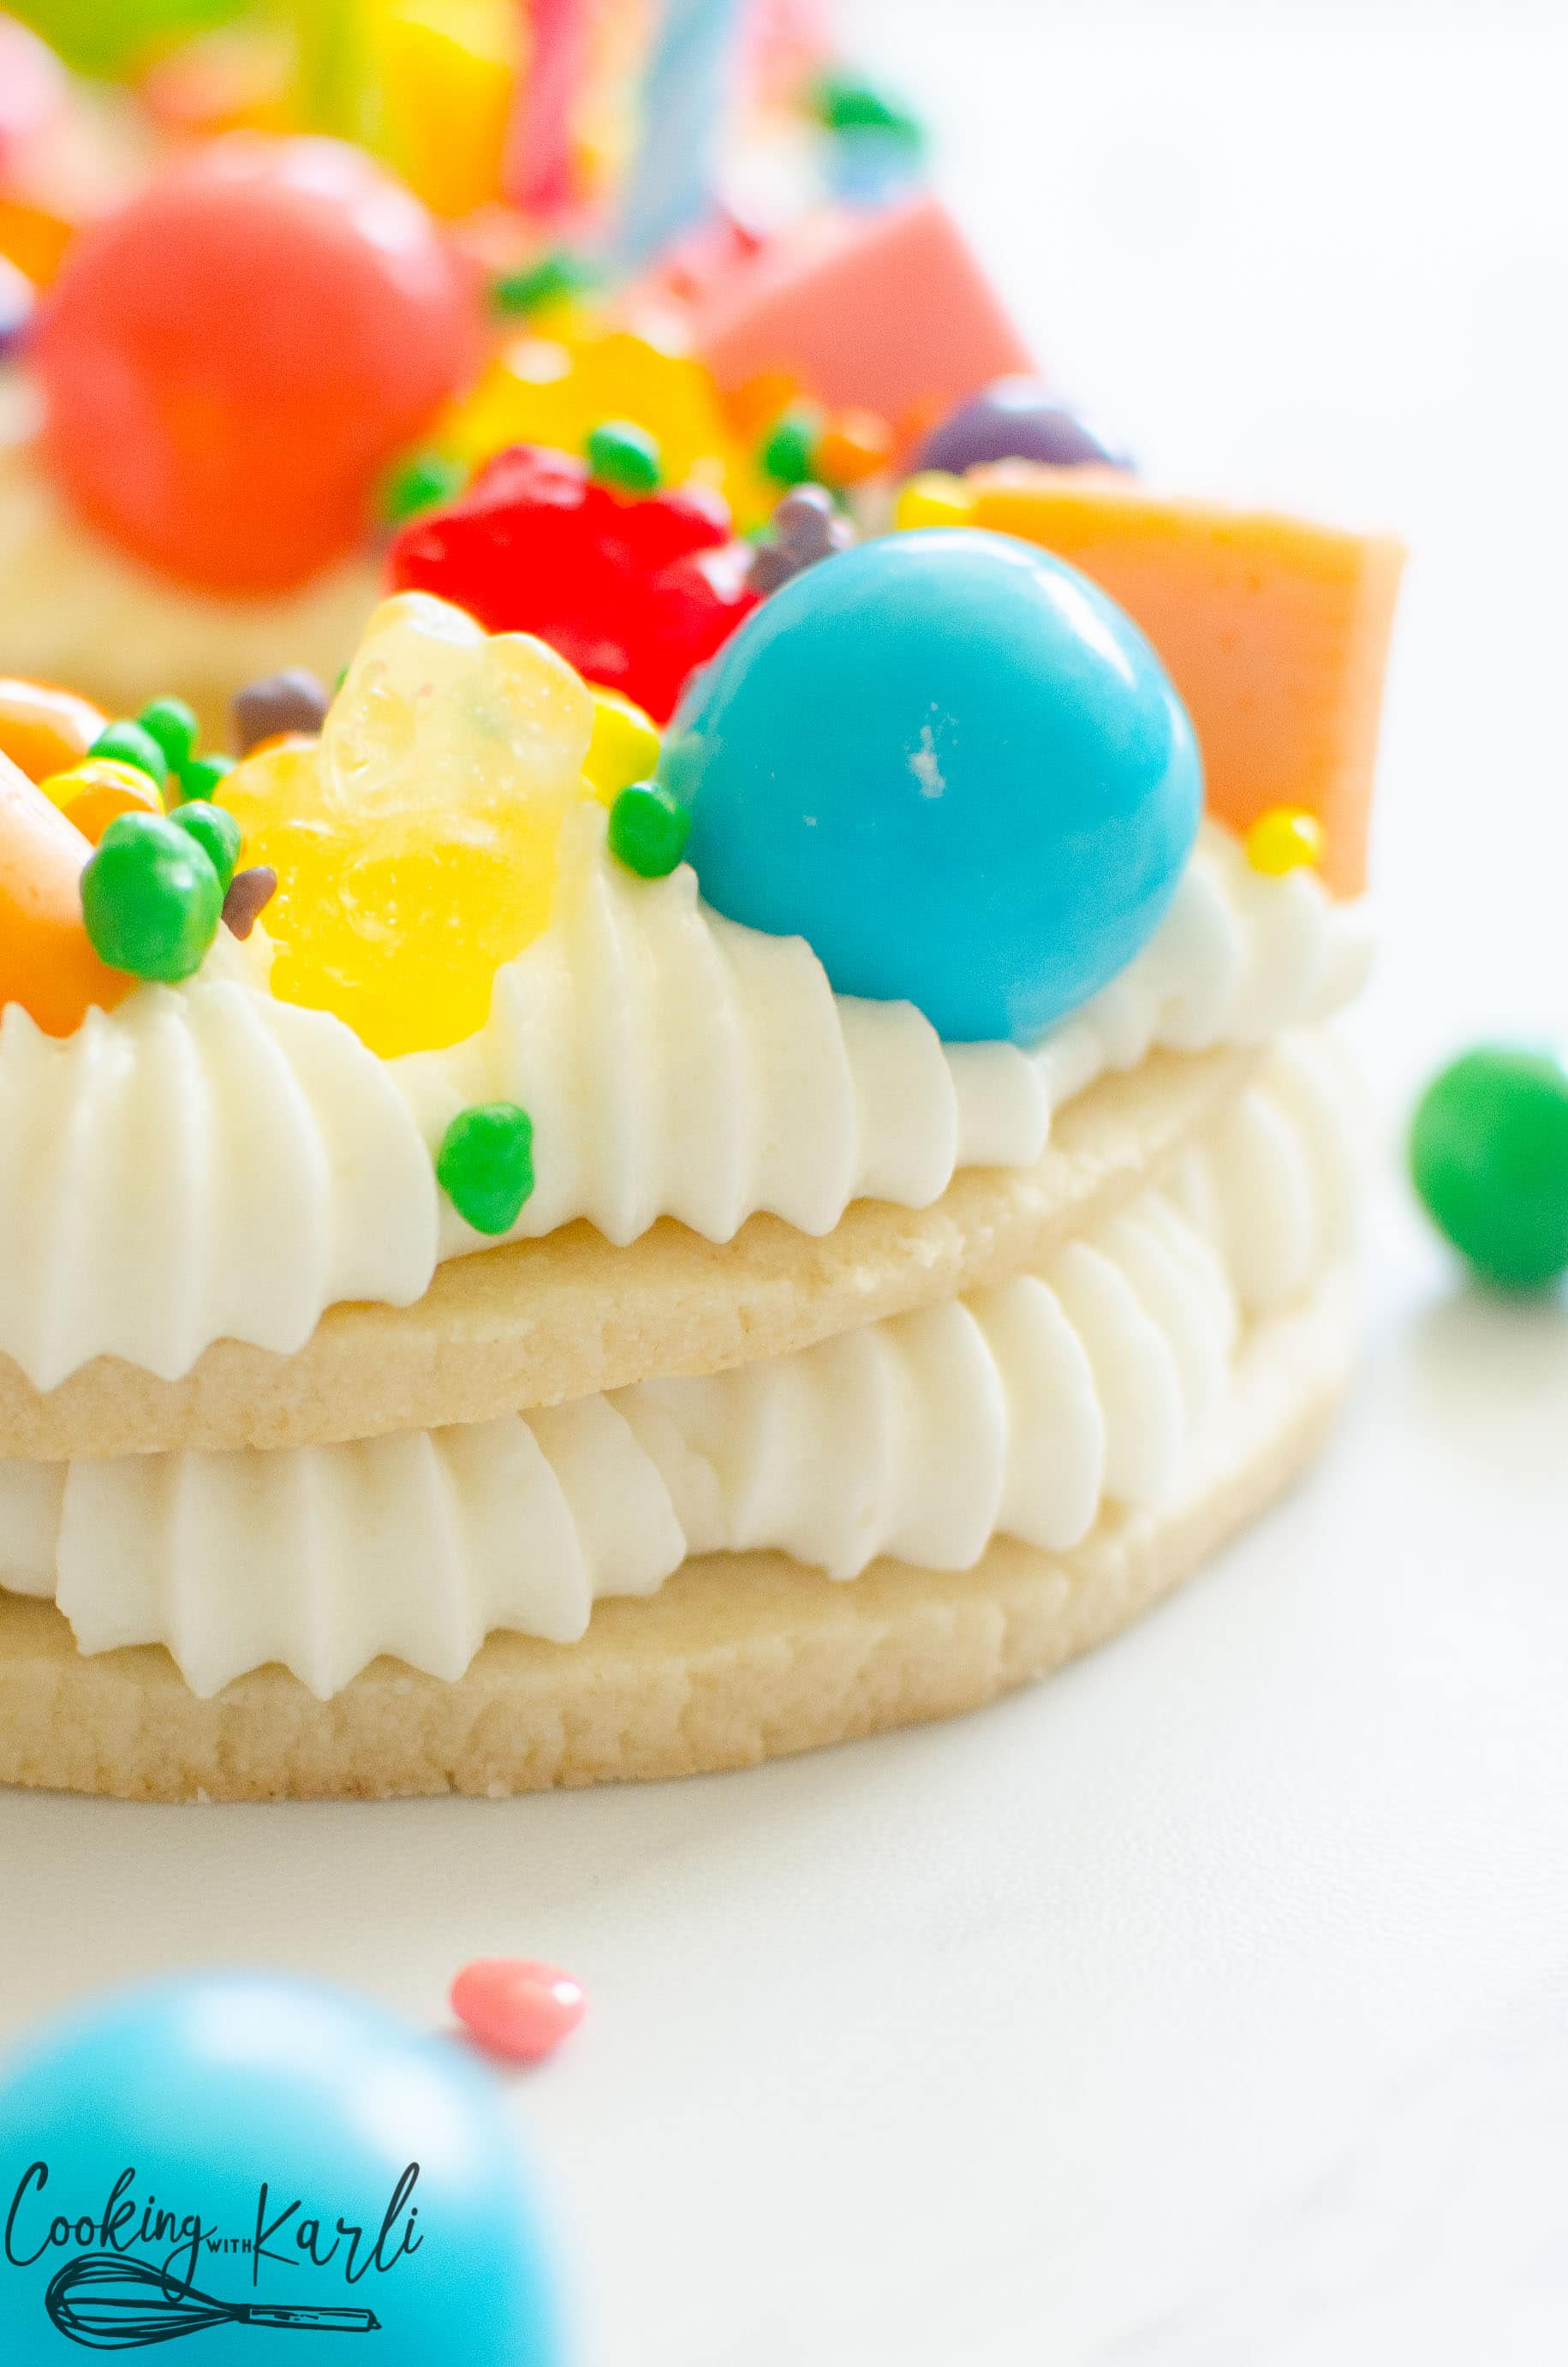 Gumballs, gummy bears and nerds top the vanilla butter cream sugar cookie birthday cake.